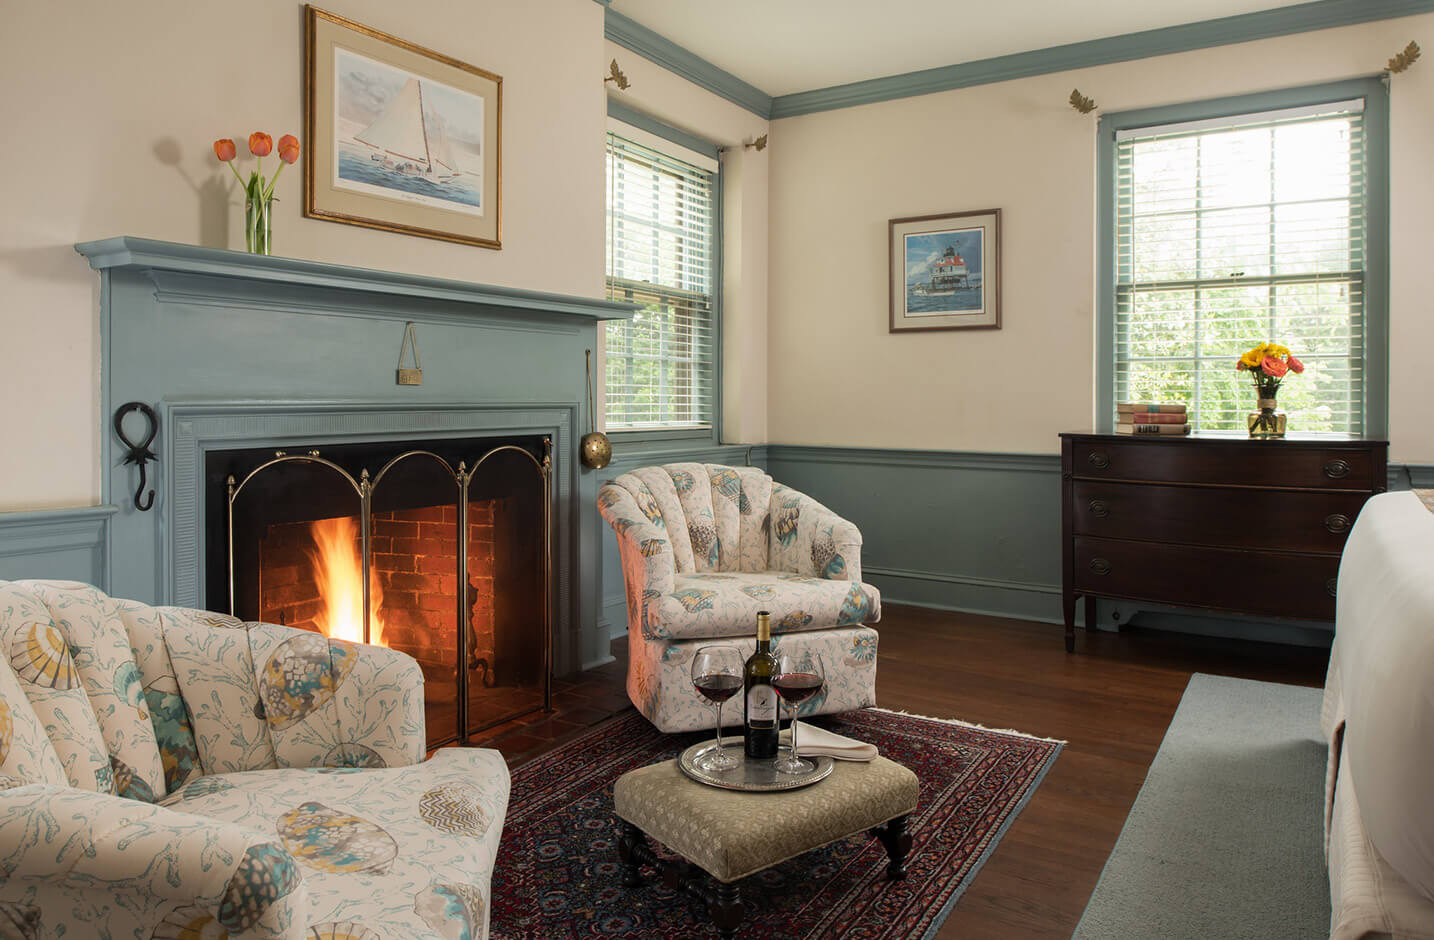 Wickes Room seating area with fireplace at our bed and breakfast in Chestertown, MD